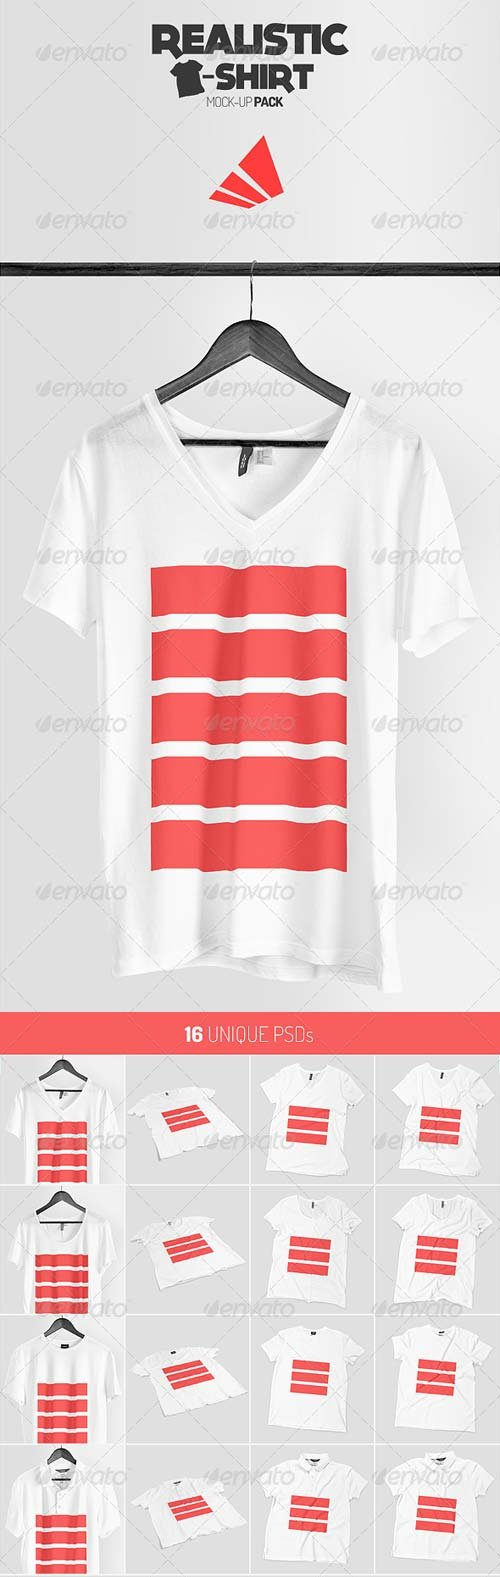 GraphicRiver Realistic T-shirt Mock-up Pack